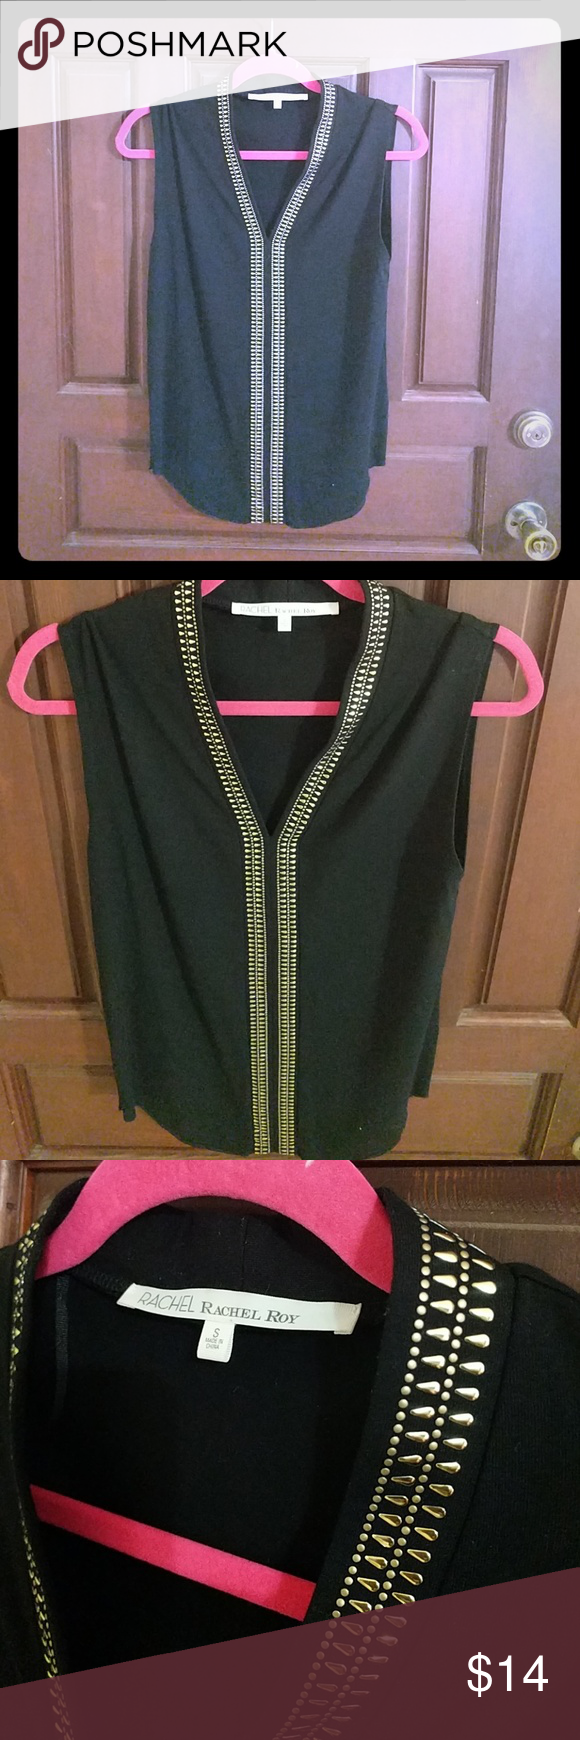 Rachel Roy Black and Gold top Rachel Roy!! Black sleeveless top size small with gold details! Comment any questions I'll be happy to answer. Happy Poshing! RACHEL Rachel Roy Tops